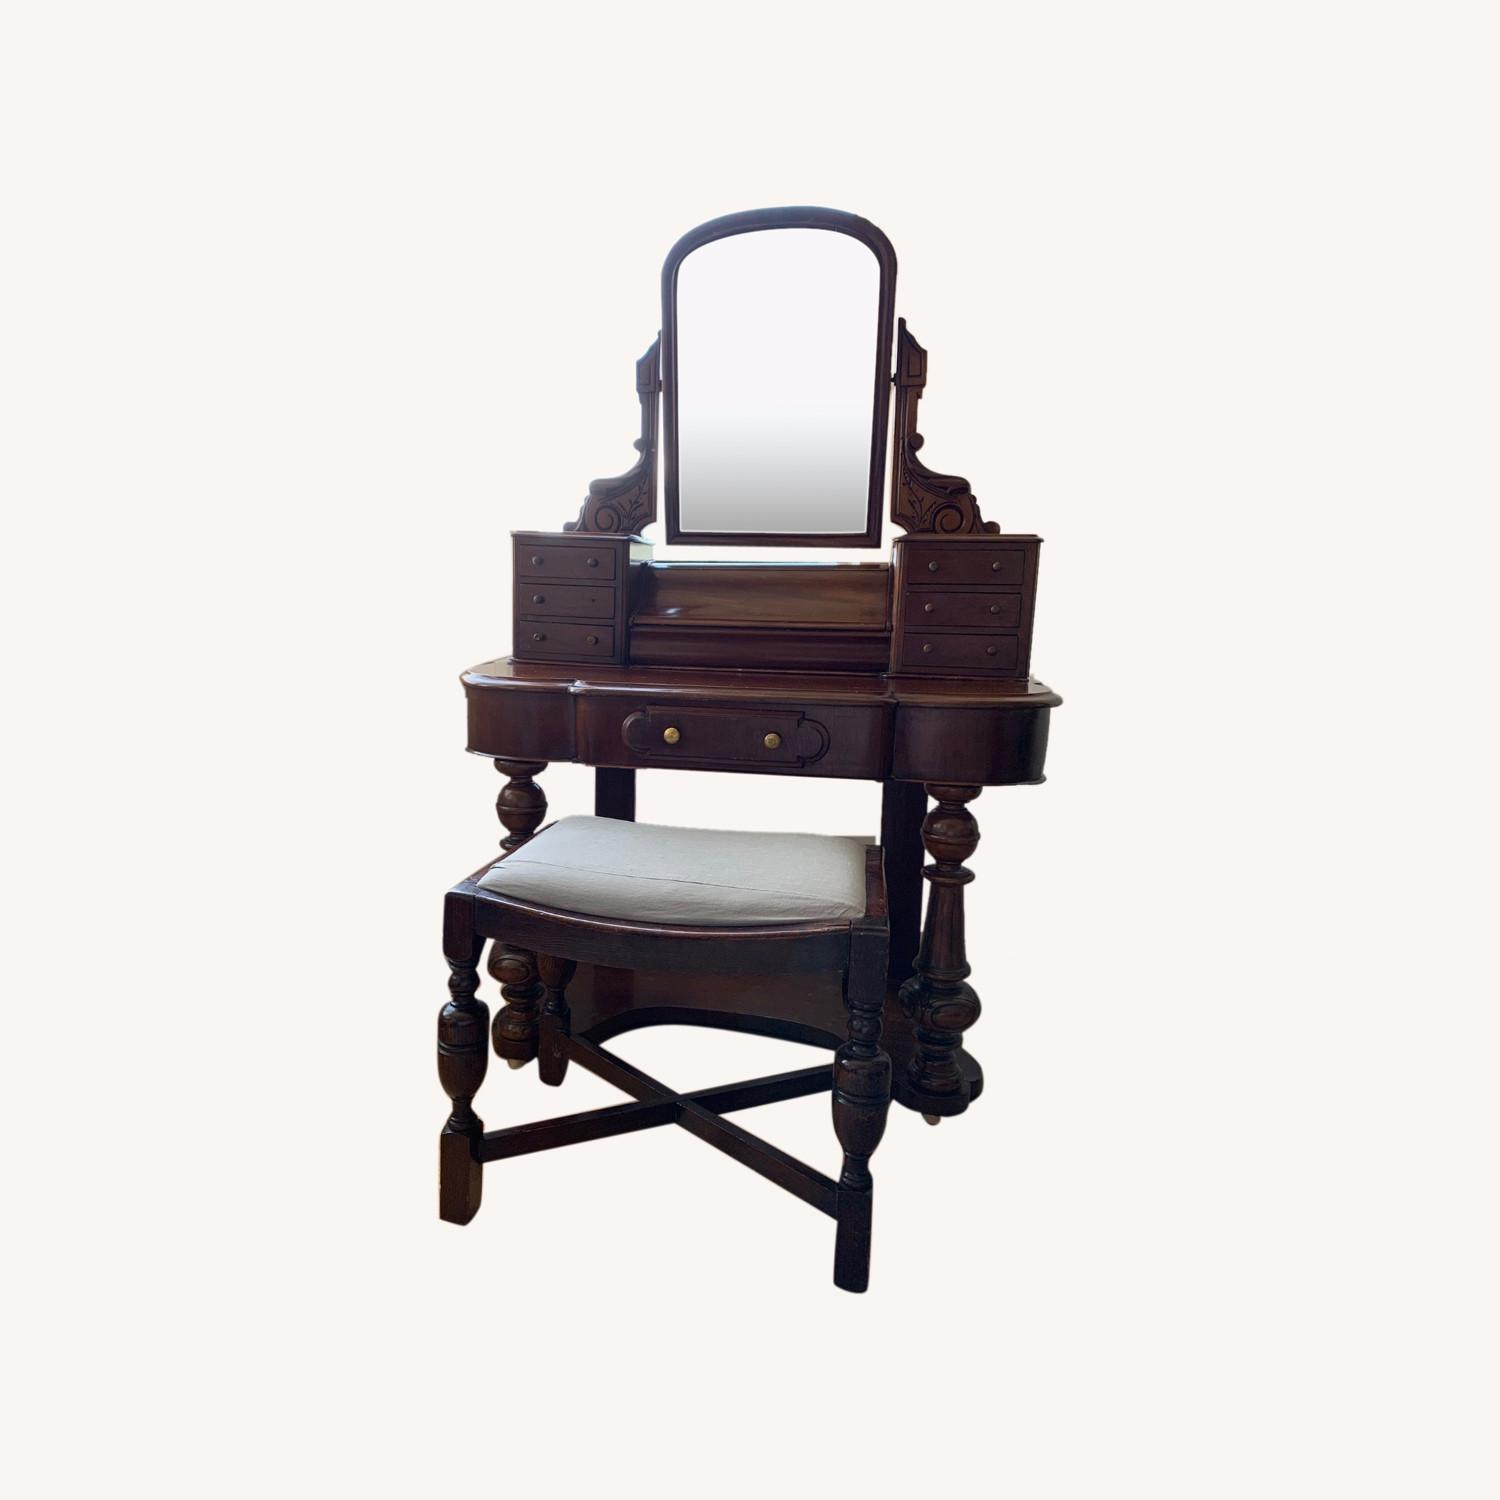 Victorian Antique Vanity Dressing Table and Stool - image-0